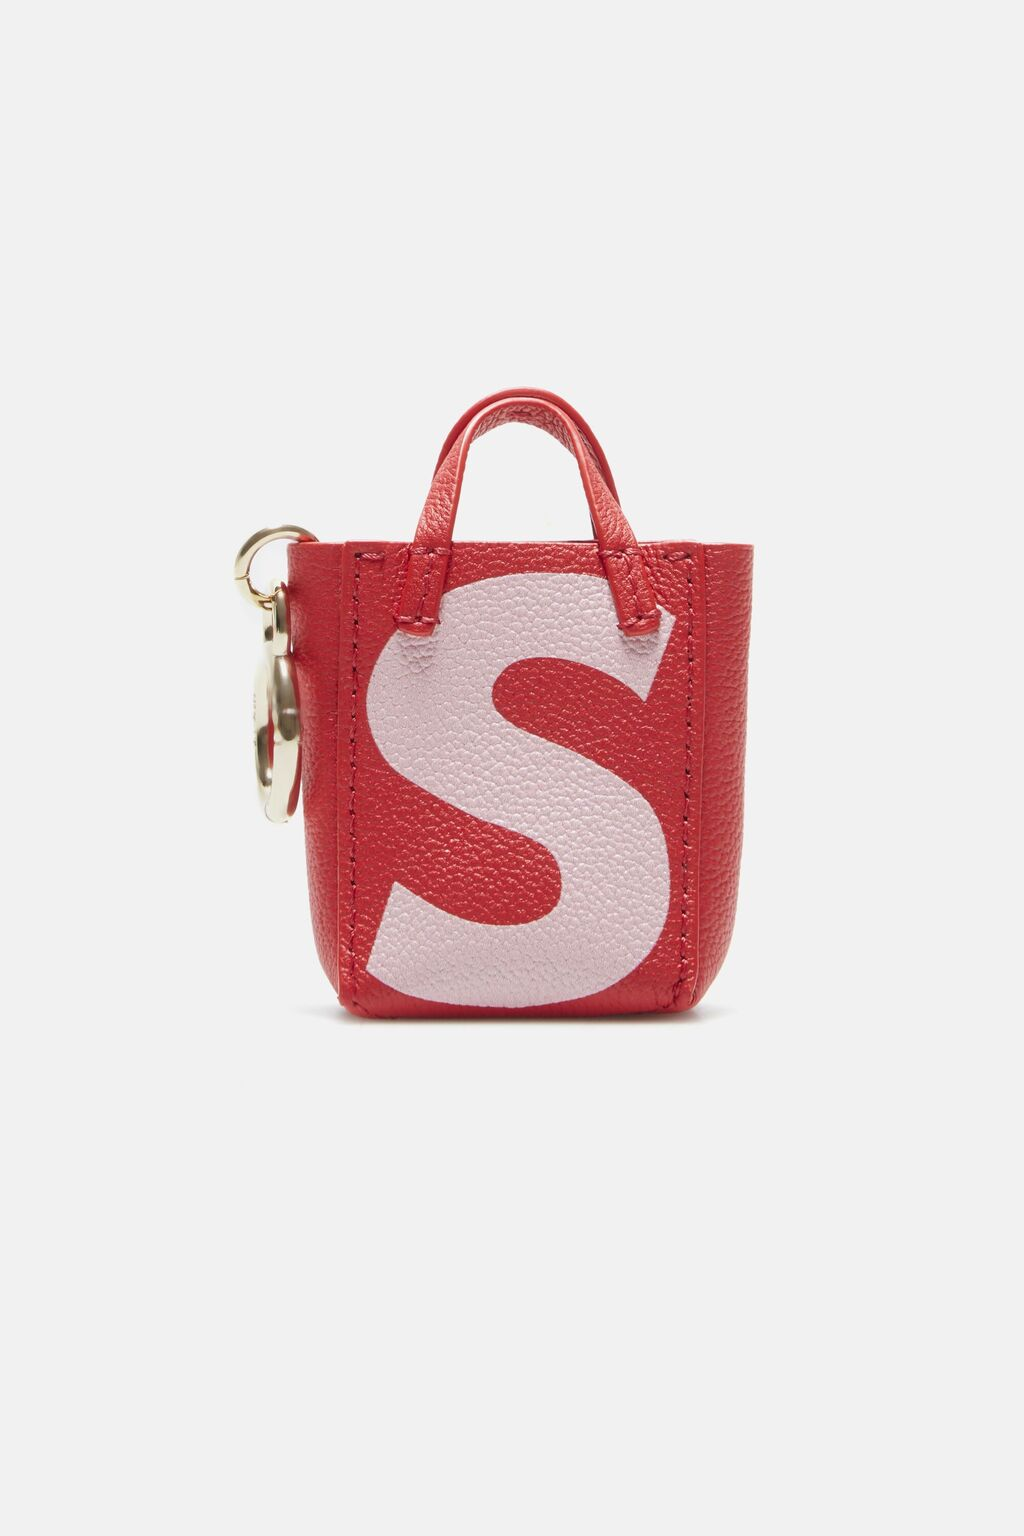 Letter S tote bag charm